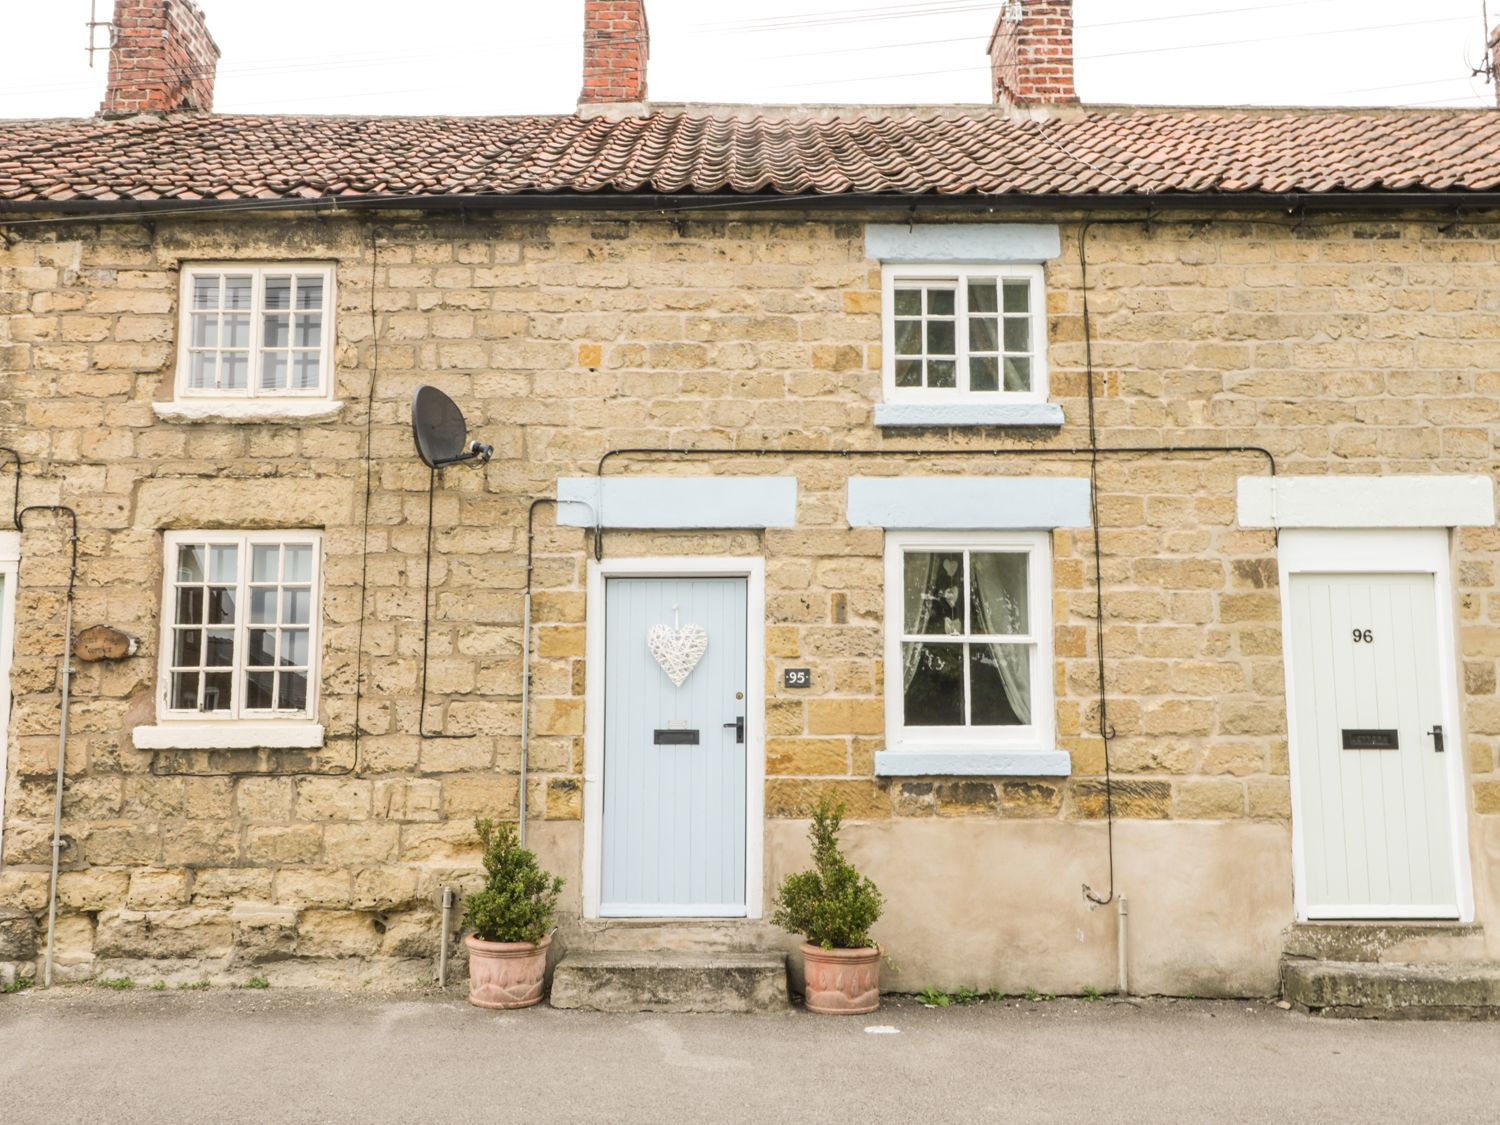 Photo of Cosy Cottage ( Ref 963828 ) Pickering holiday cottage - Self catering accommodation in Ryedale North Yorkshire